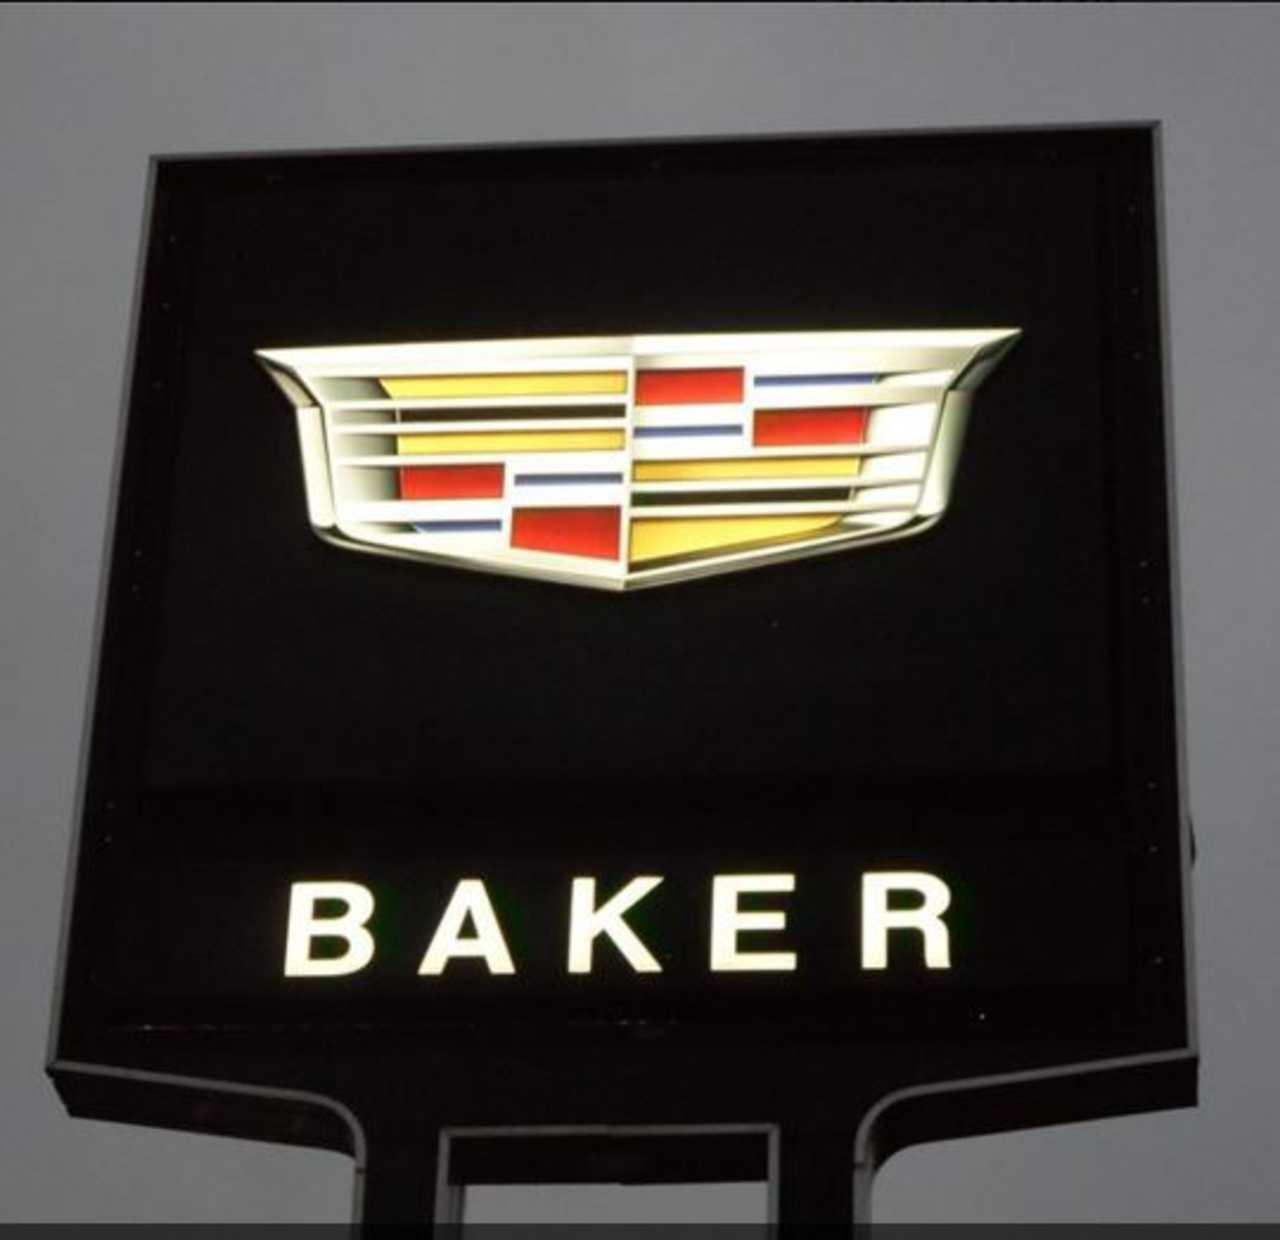 Baker Cadillac - Auto - Auto Dealers in Leominster MA